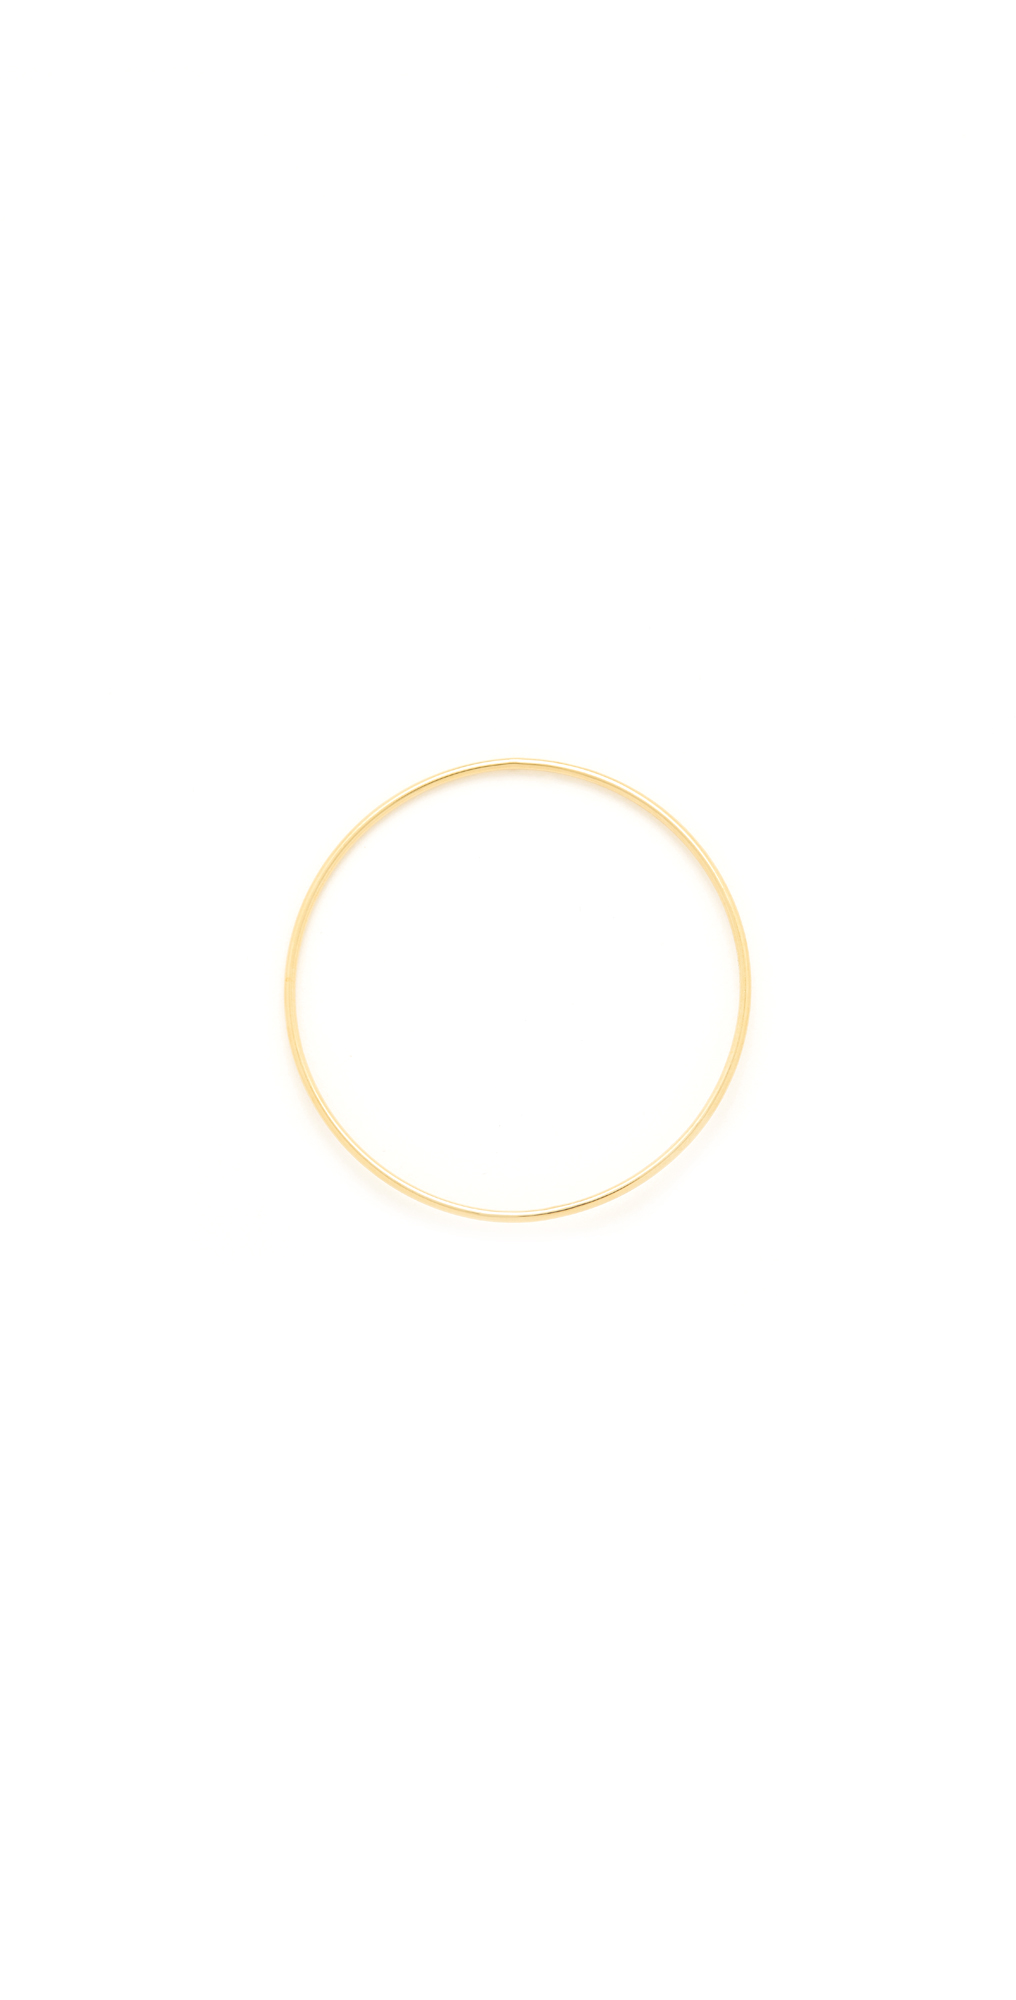 14k Gold Wire Circle Earring Saskia Diez